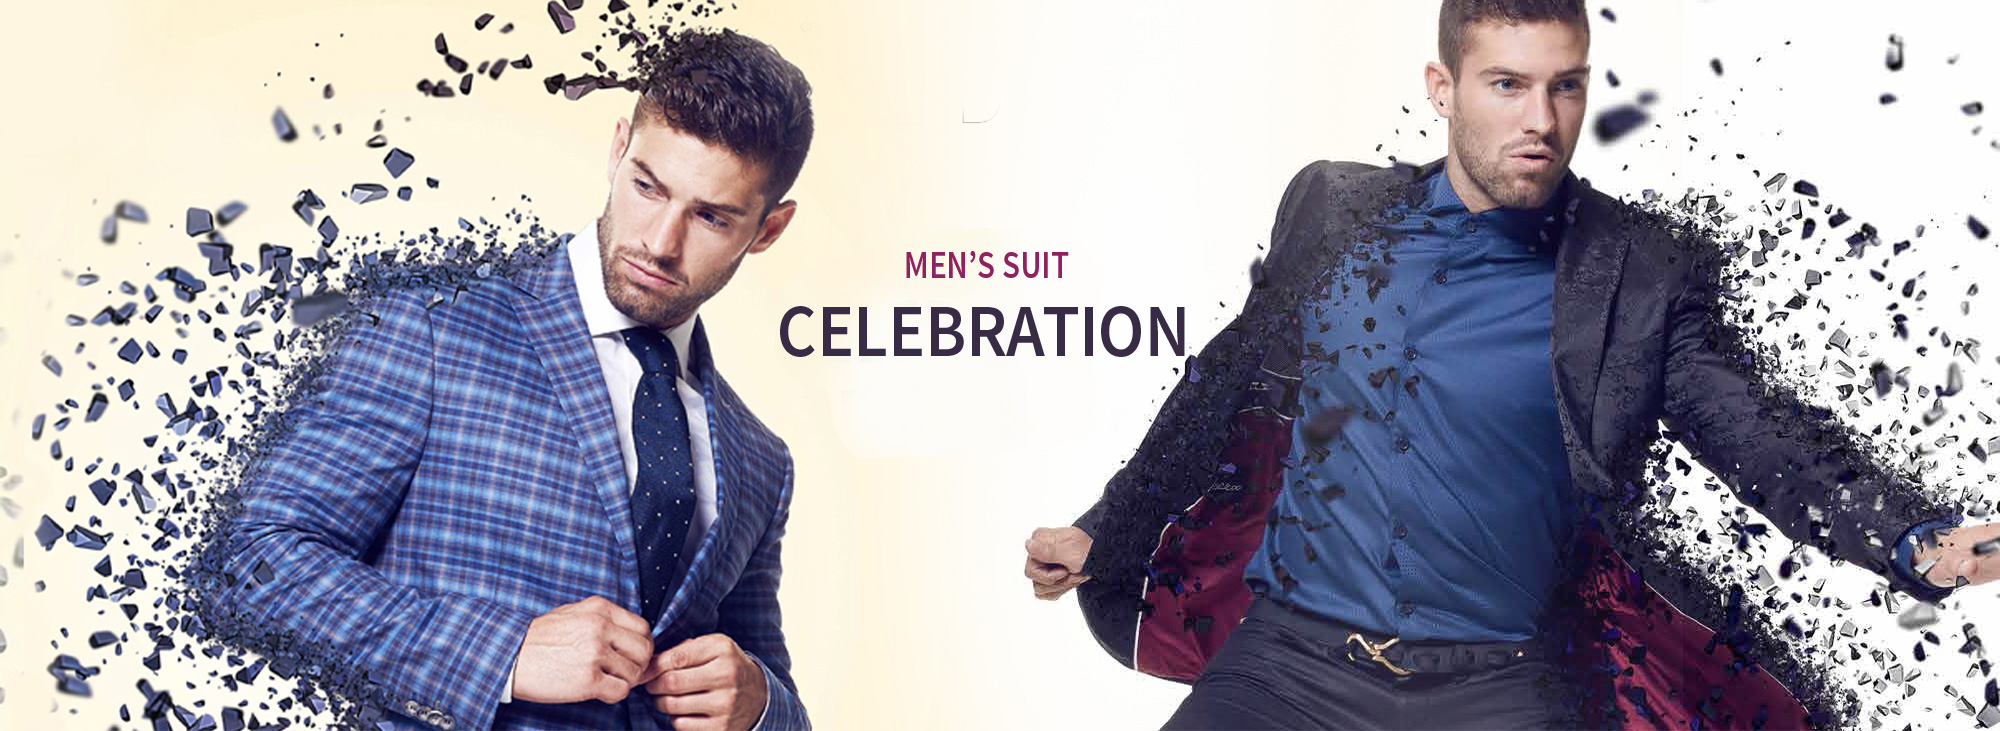 Men's suit Celebration